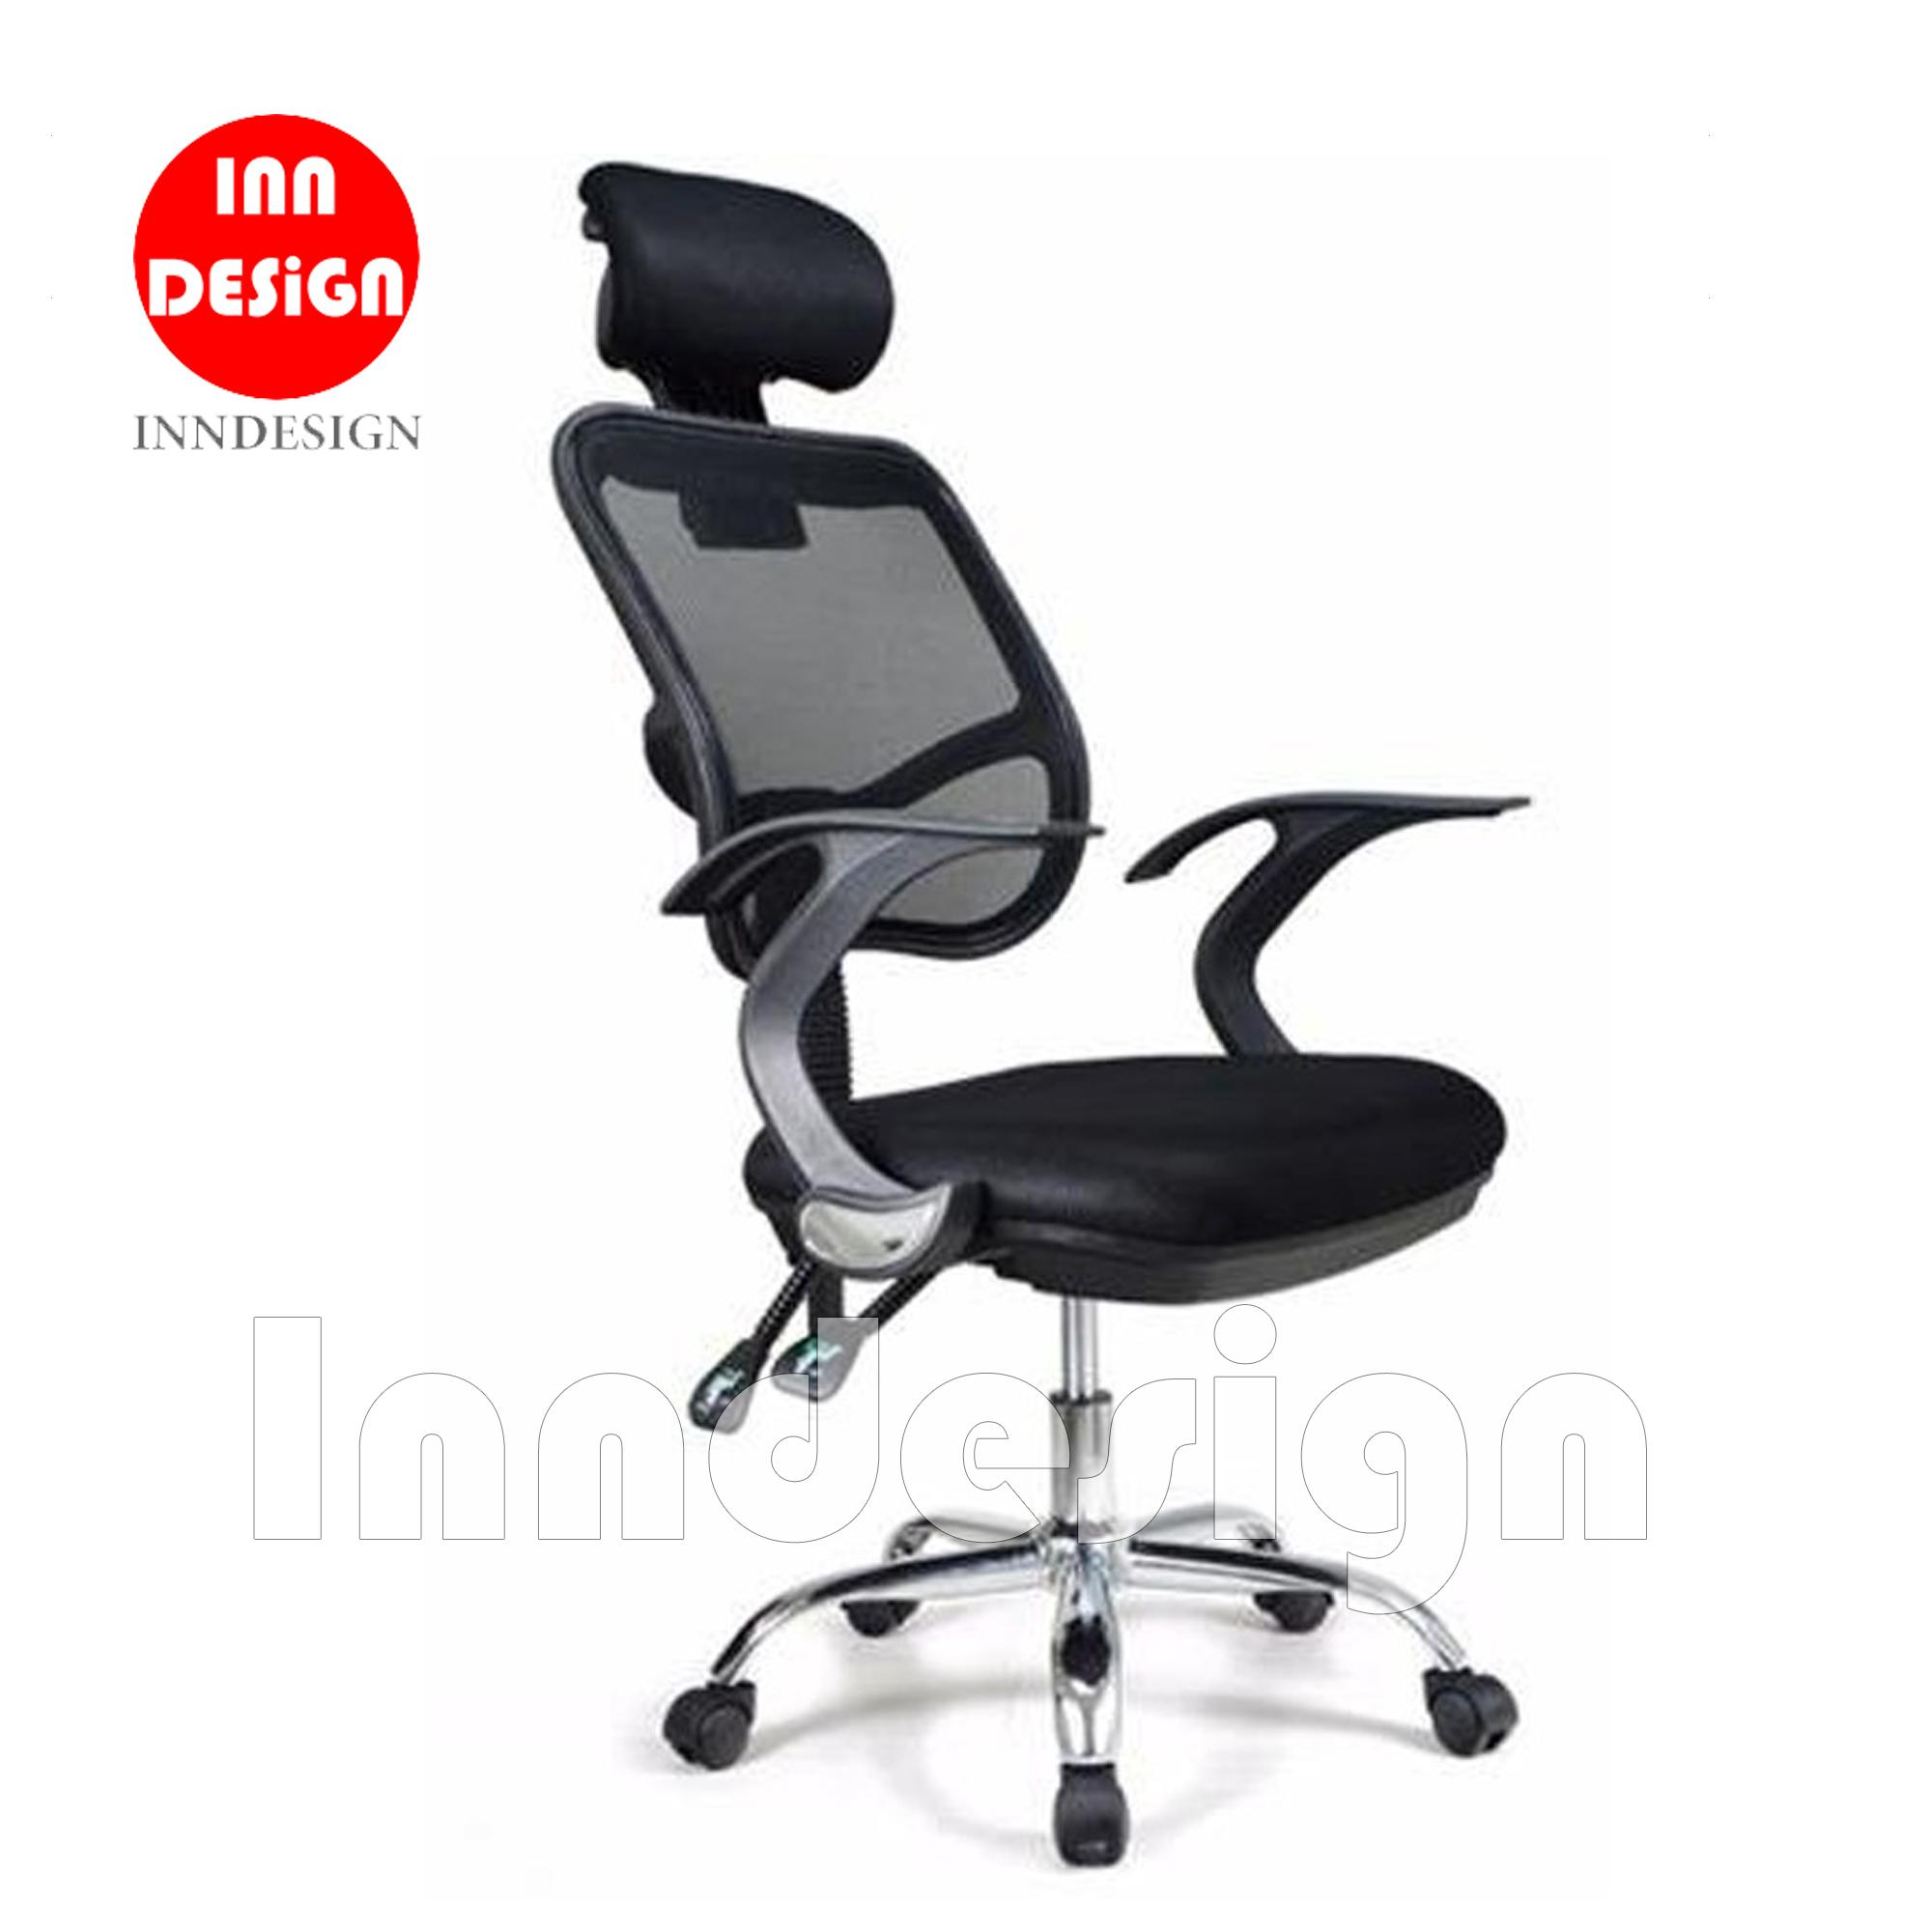 Dolando Adjustable Swivel Mesh Office Chair with PVC Chrome Leg / Study Chair / Chair